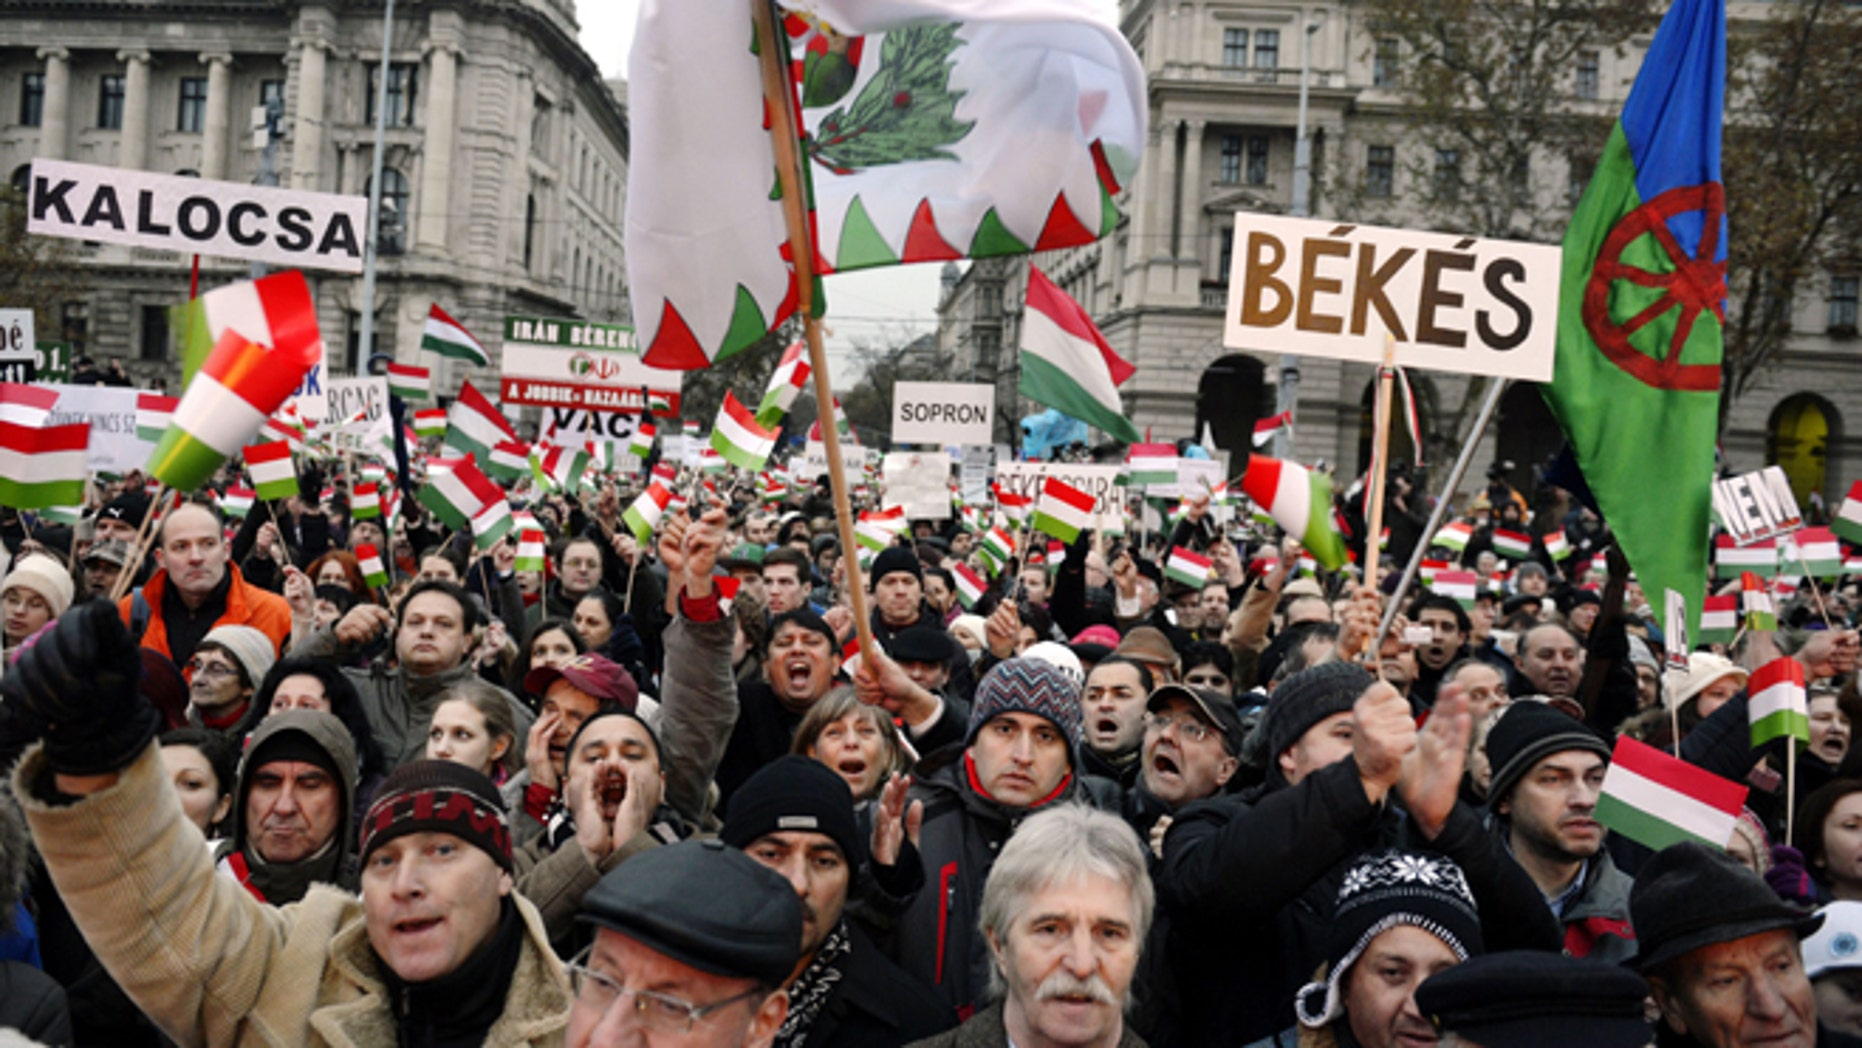 Dec. 2, 2012: Participants wave Hungarian national flags and a flag of Romas, right, as thousands of people attend a protest called Mass Demonstration Against Nazism in front of the Parliament building (unseen) in Budapest, Hungary.